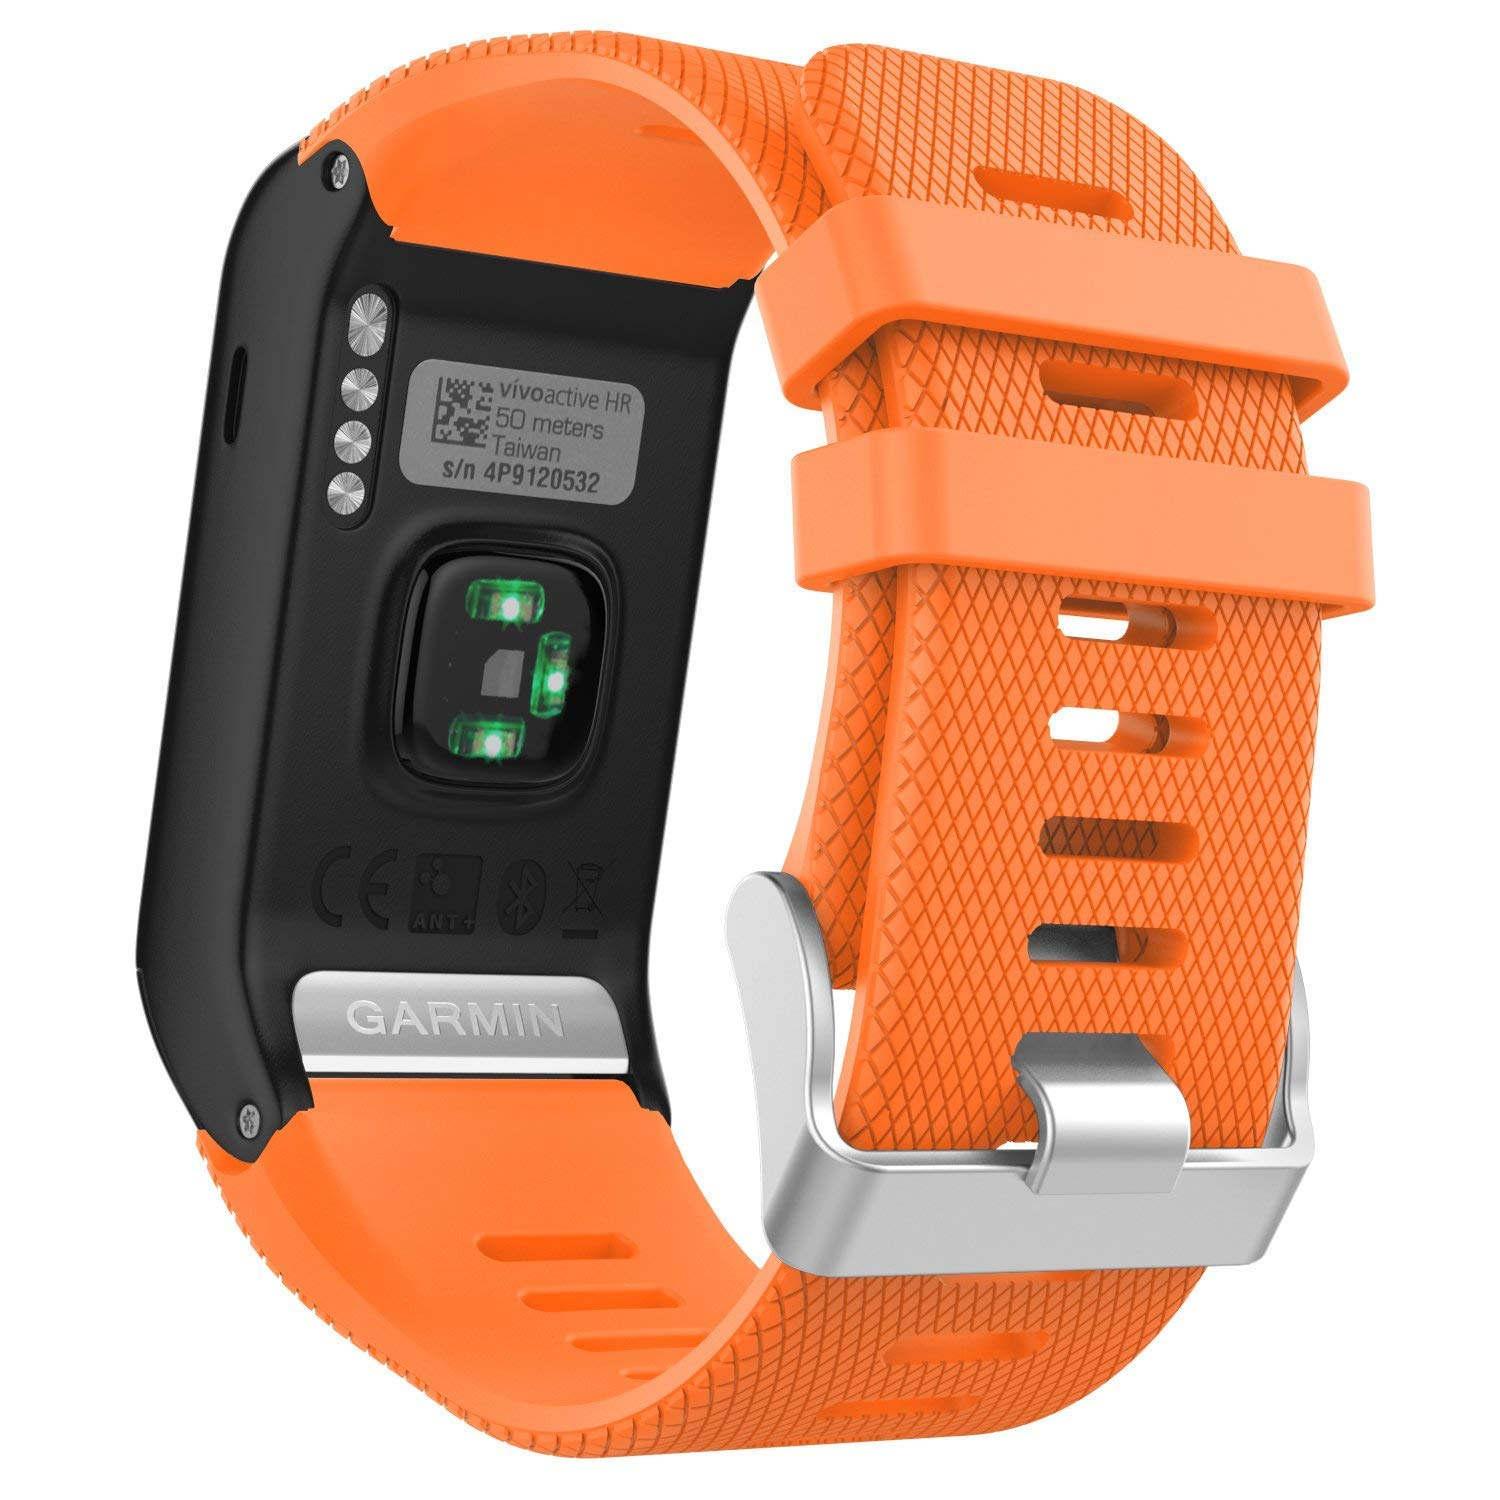 Fintie Band for Garmin VIVOACTIVE HR, Soft Silicone Replacement Watch Band for Garmin Vivoactive HR Sports GPS Smart Watch with Adapter Tools, Orange